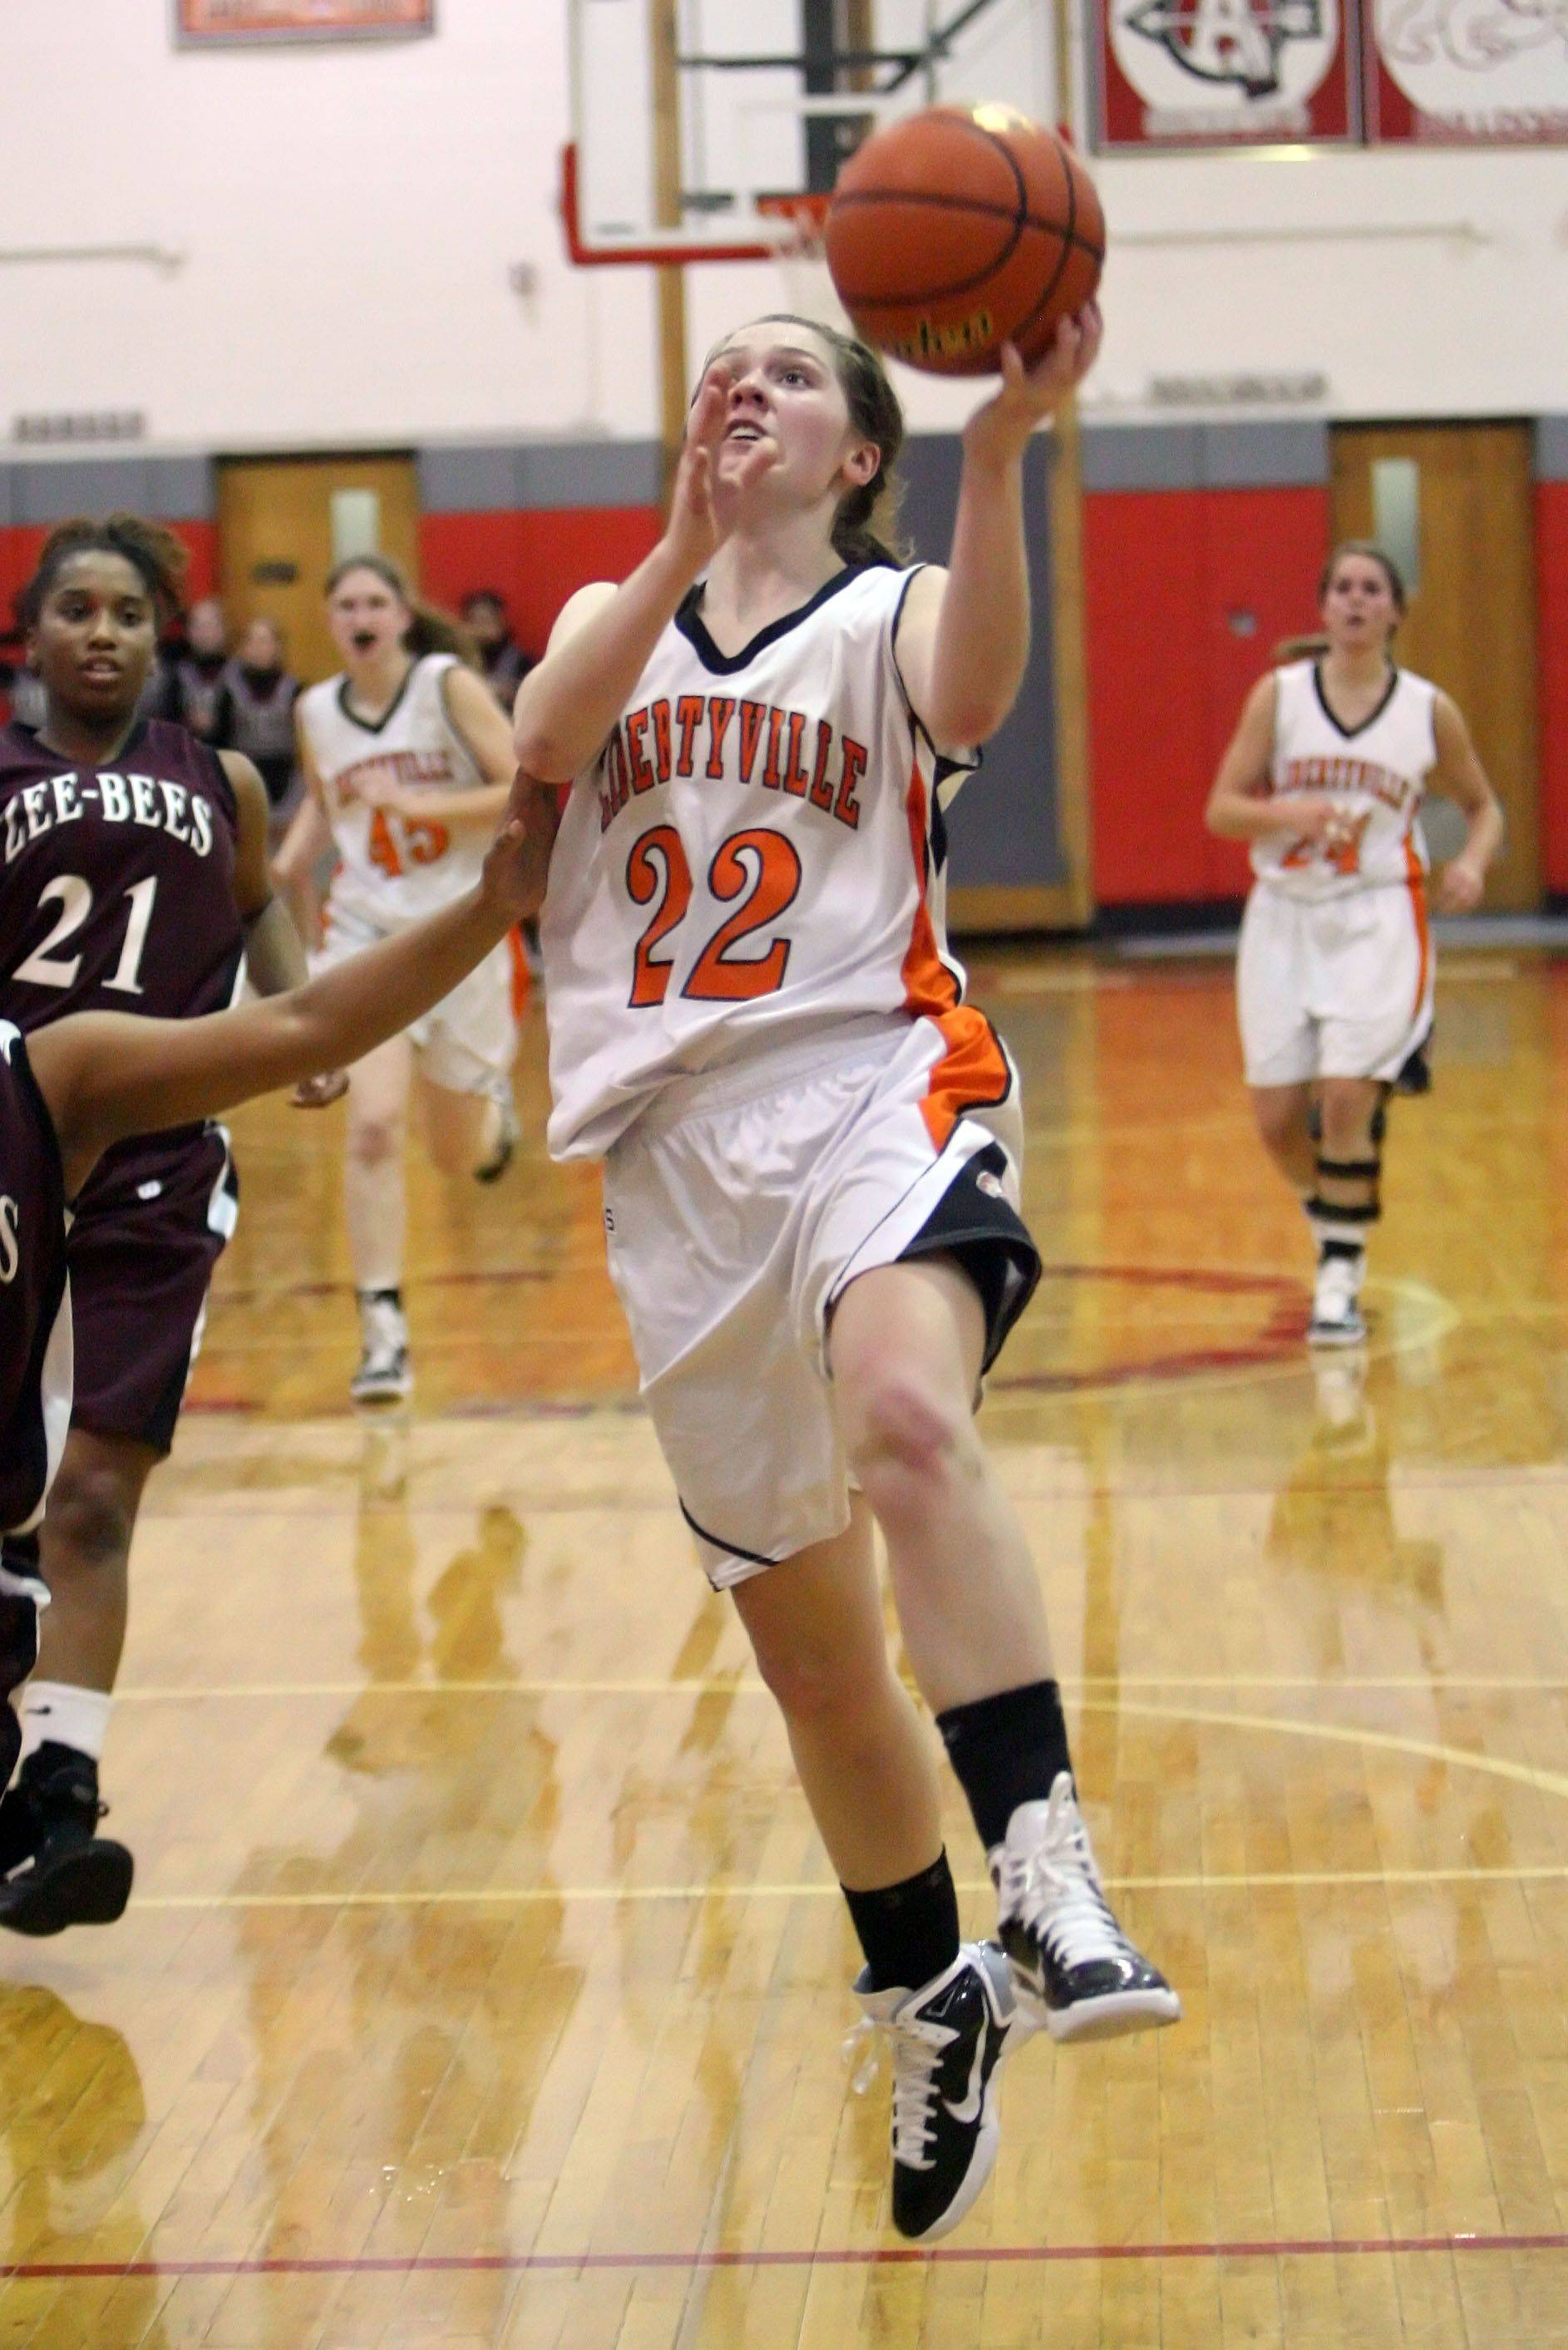 Images from the Libertyville vs, Zion-Benton girls basketball game Monday, February 21 in Mundelein.